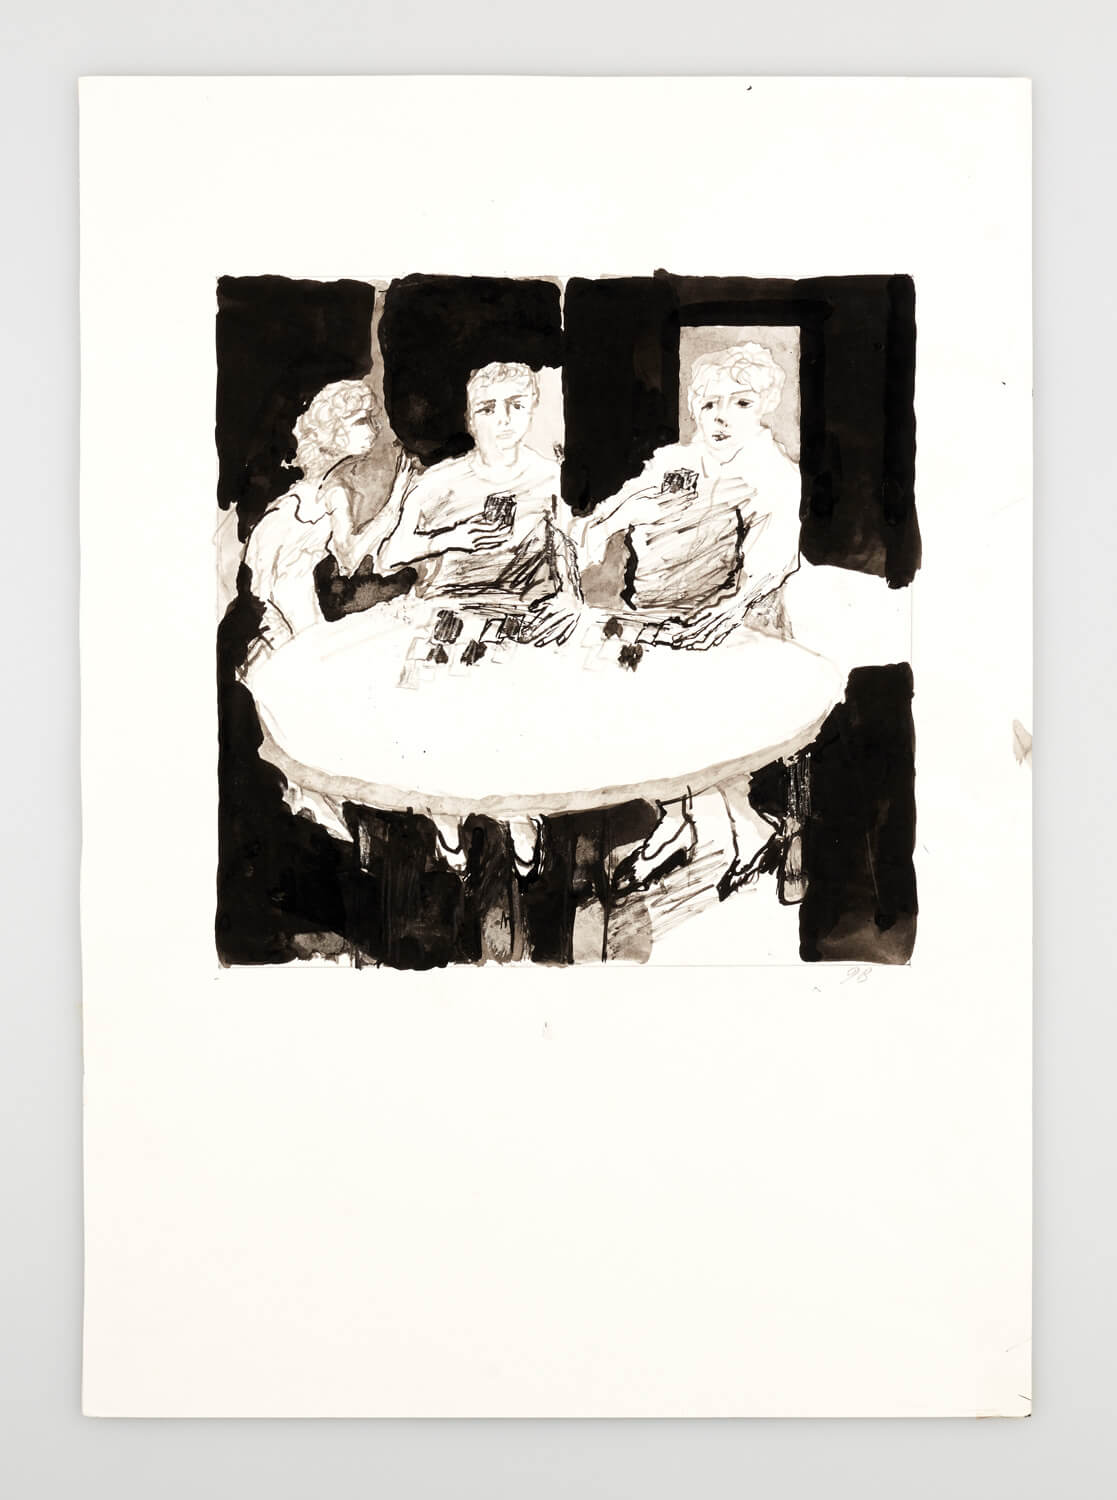 JB101 - Card players at a round table - 2000 - 26 x 26 cm - Indian ink and was